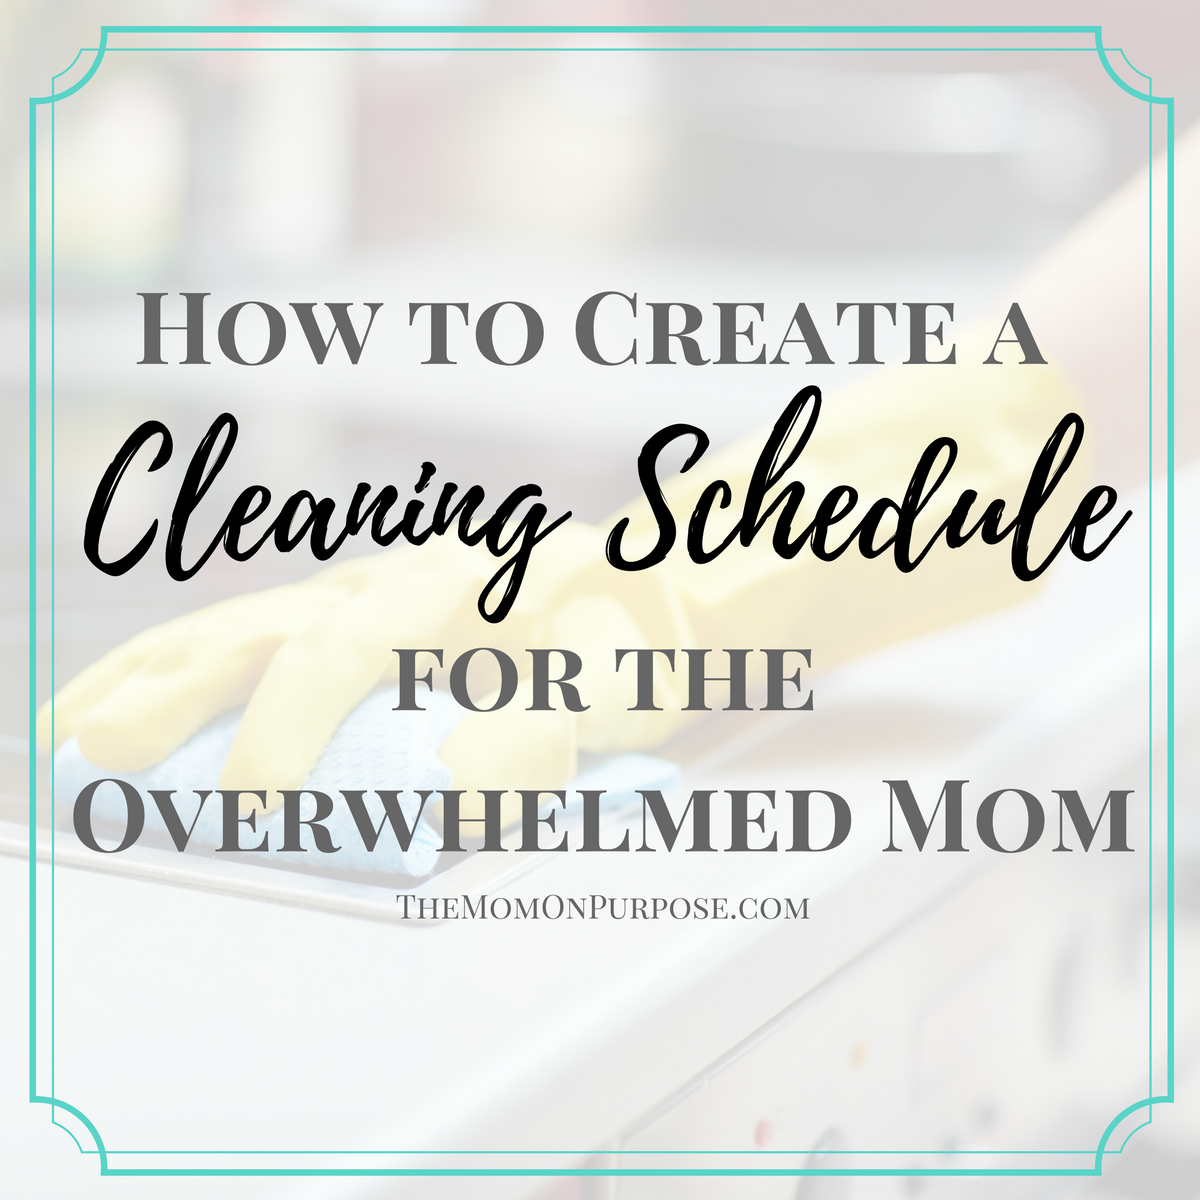 Creating a Cleaning Schedule for Busy Moms